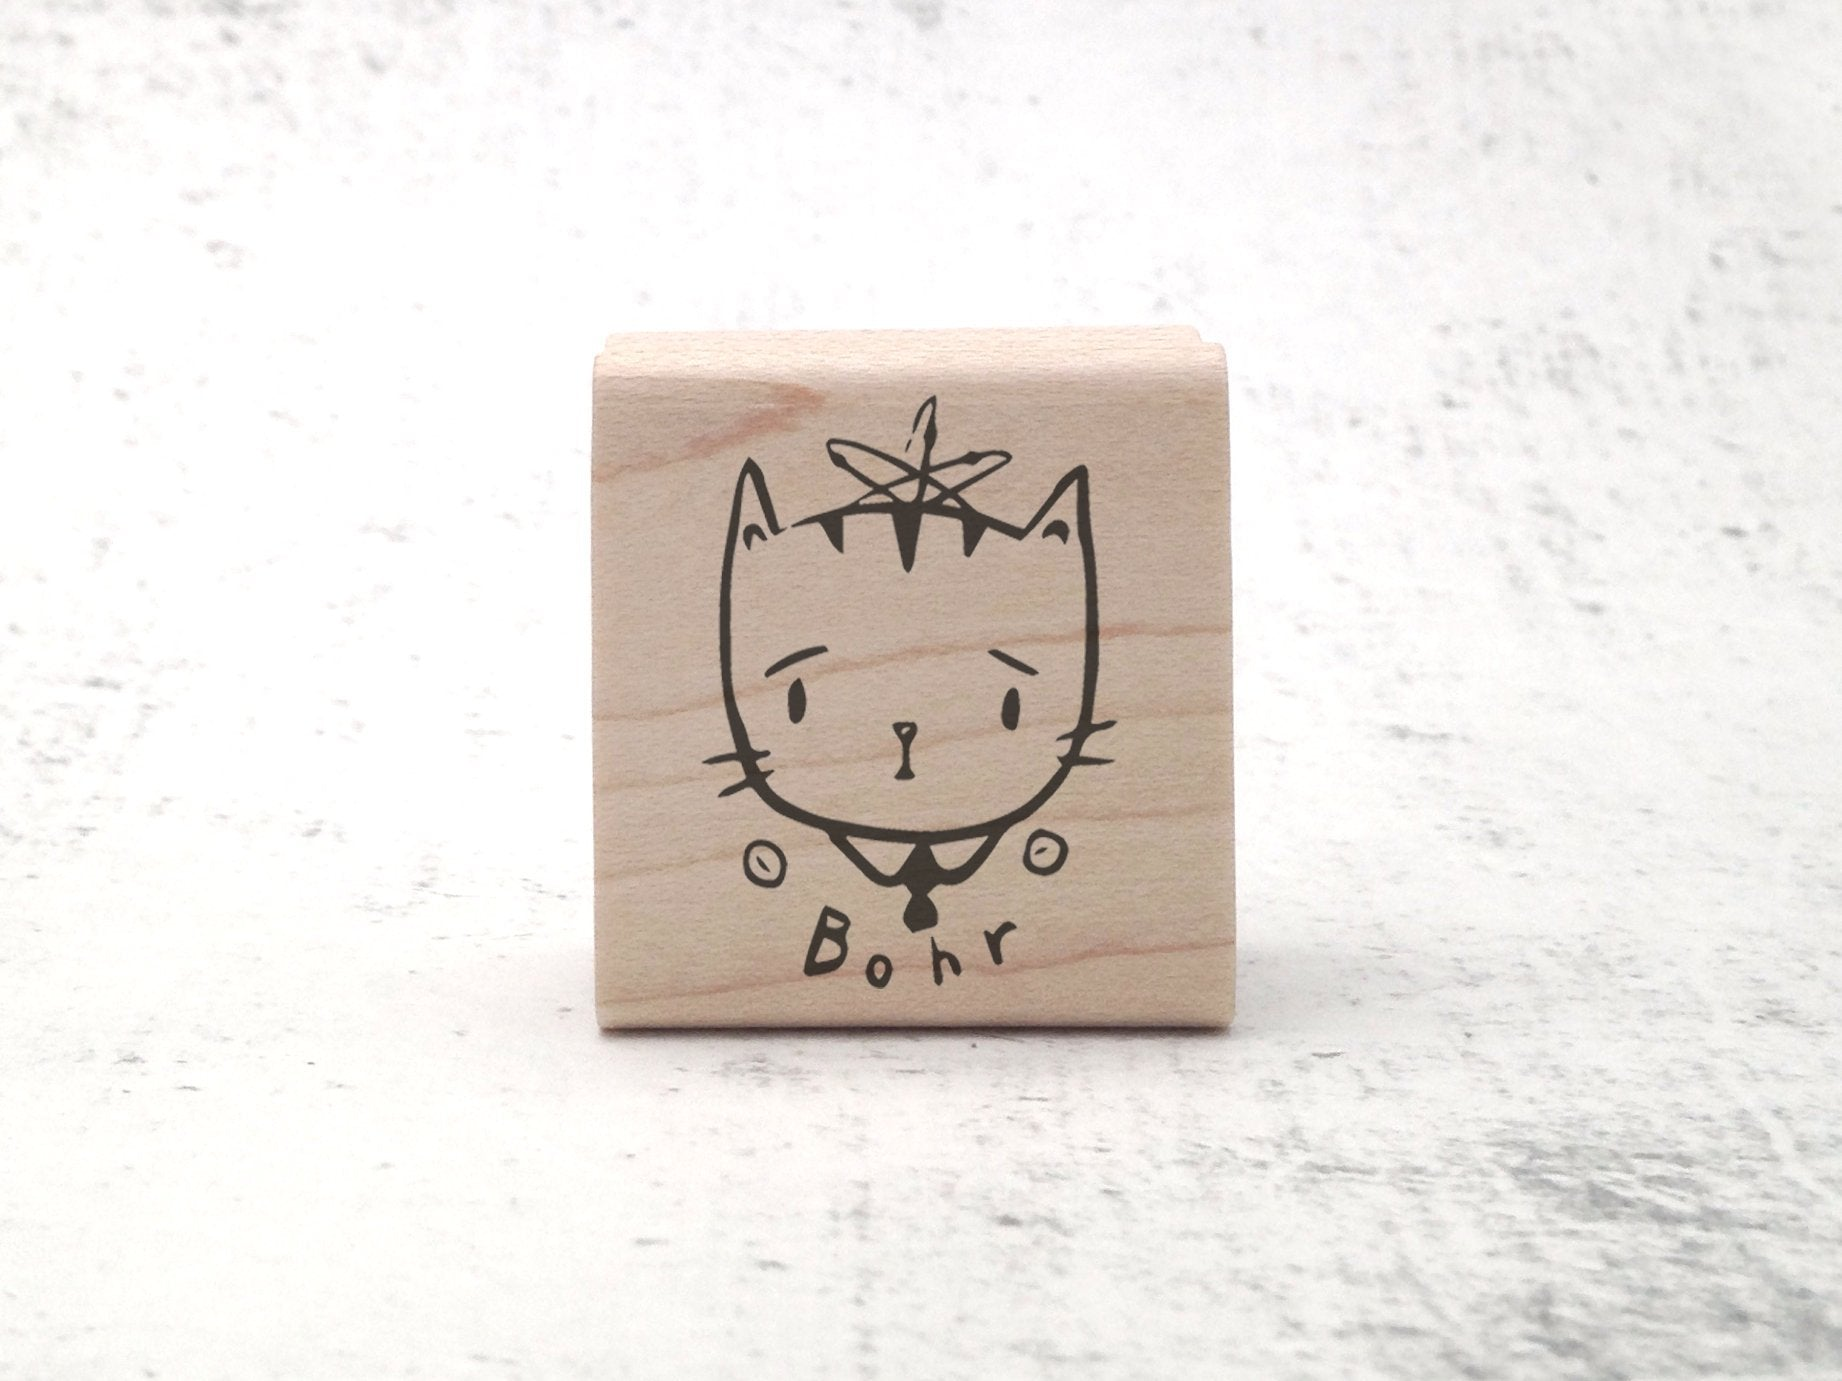 Nikola Tesla, Niels Bohr, Marie Curie Science Cats Rubber Stamp - Chemistry / Physics Rubber Stamp - Teacher Grading Stamp - Geek Stamp Gift